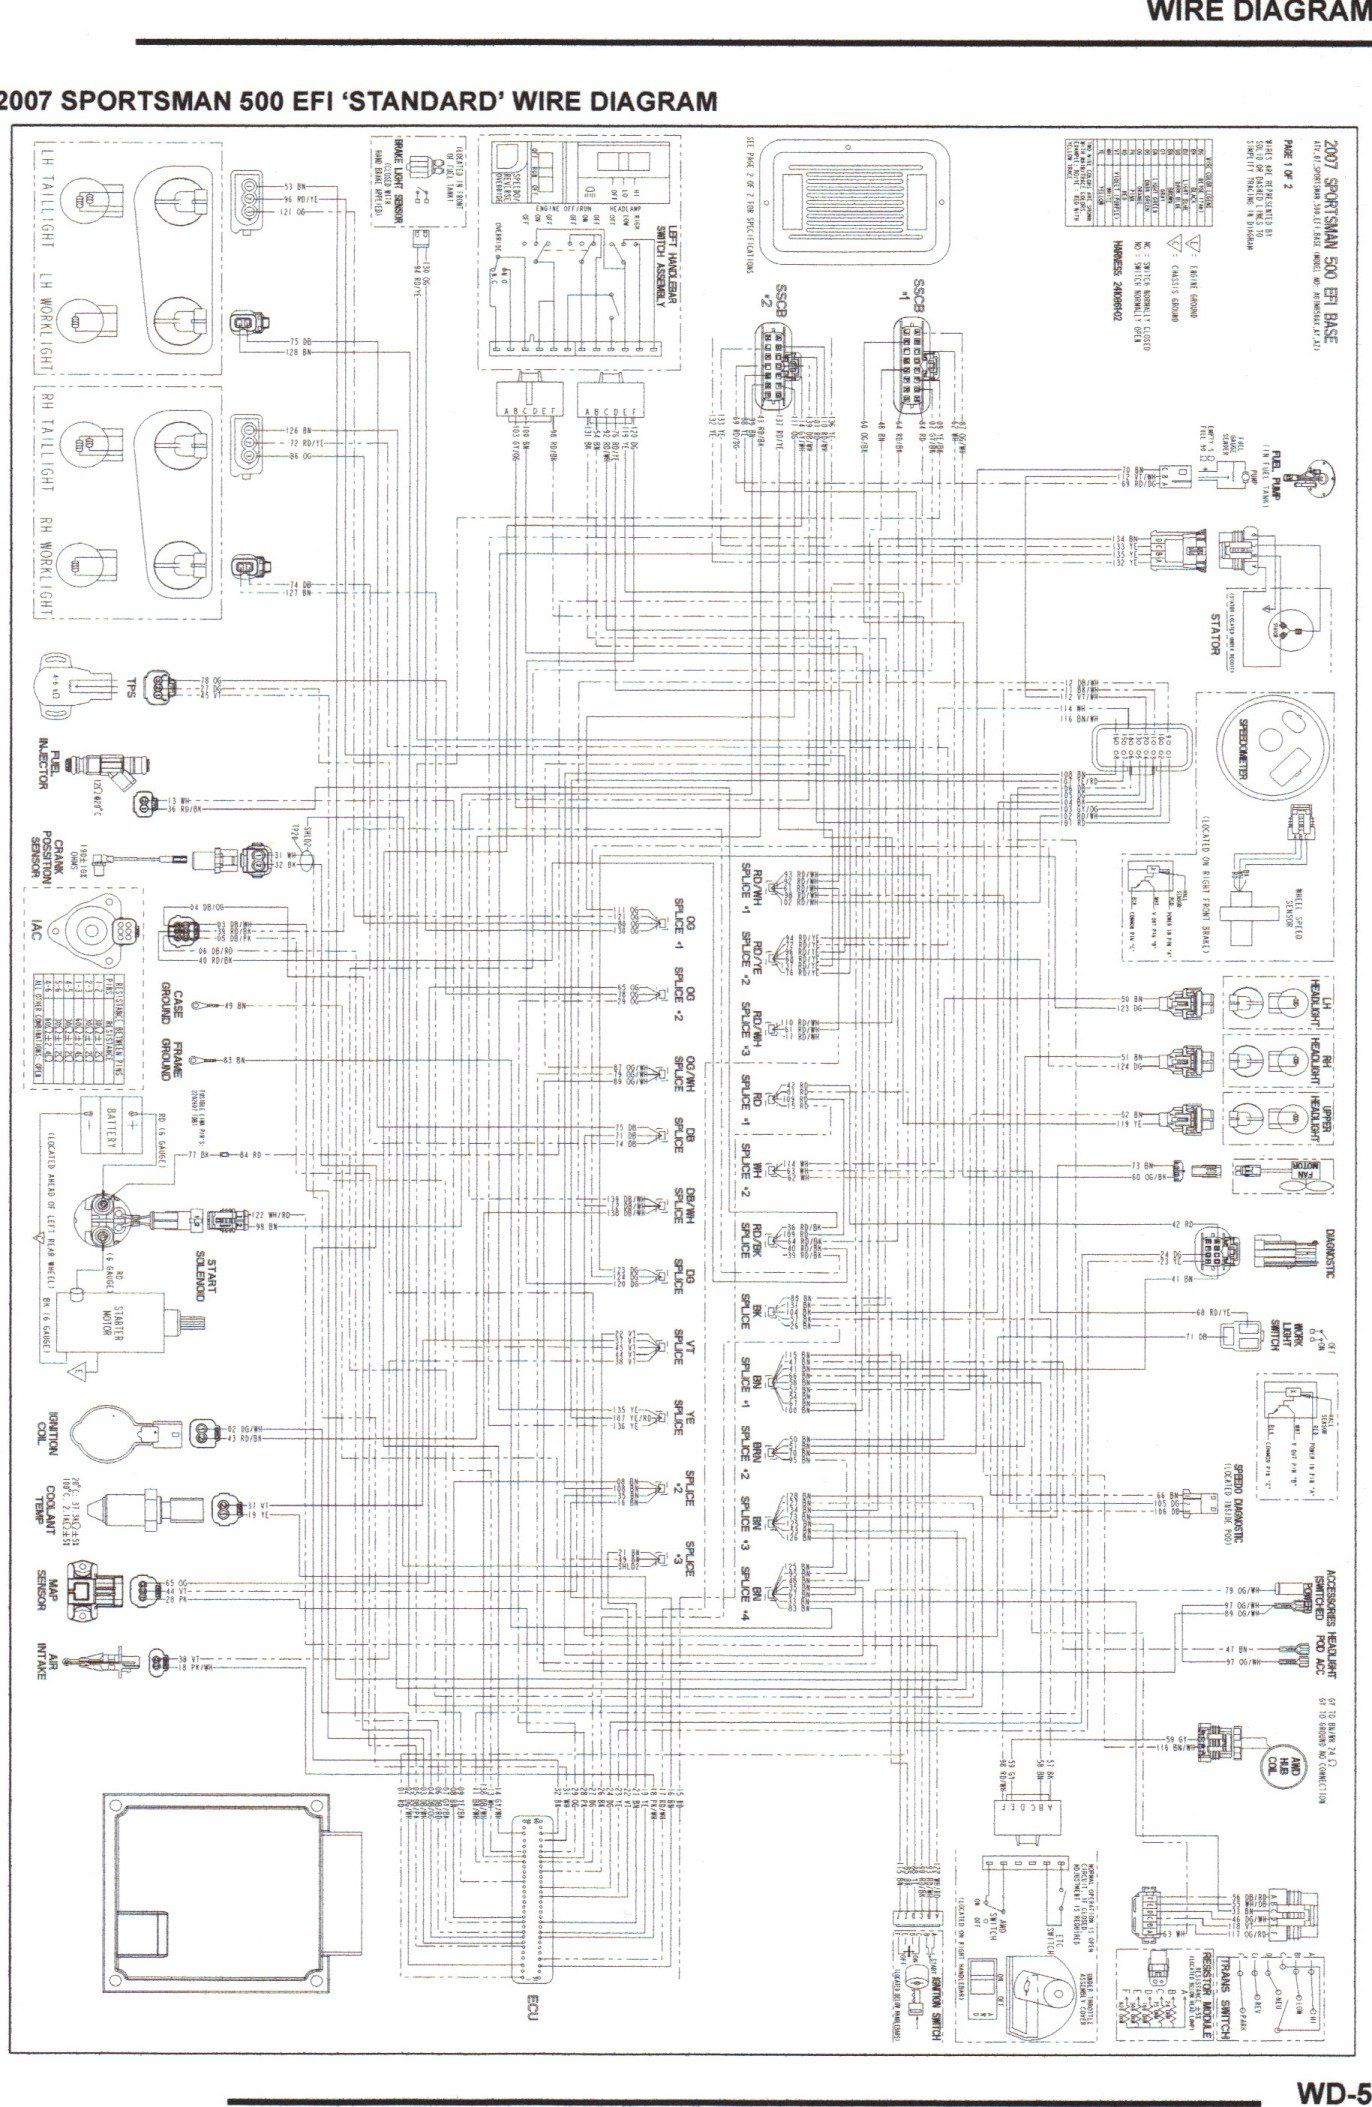 hight resolution of 05 polaris atv wiring diagram wiring diagram for you polaris sportsman 500 wiring schematics 02 polaris